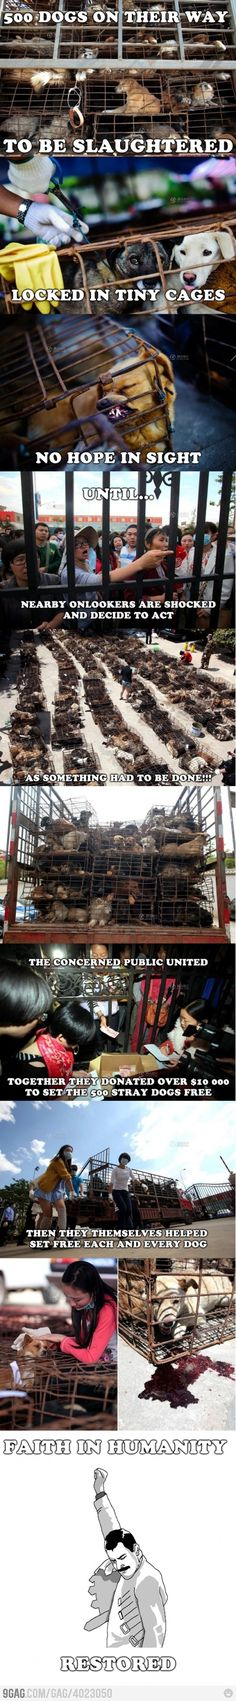 Stop the Dog Meat Trade!!! China has NO animal welfare laws!!!! Stray dog rescue #animalrights: Animal Rights, Animal Cruelty, Faith In Humanity Restored, Animal Abuse, Faith Restored, Faith In Humanity Dogs, Animalabuse, So Sad